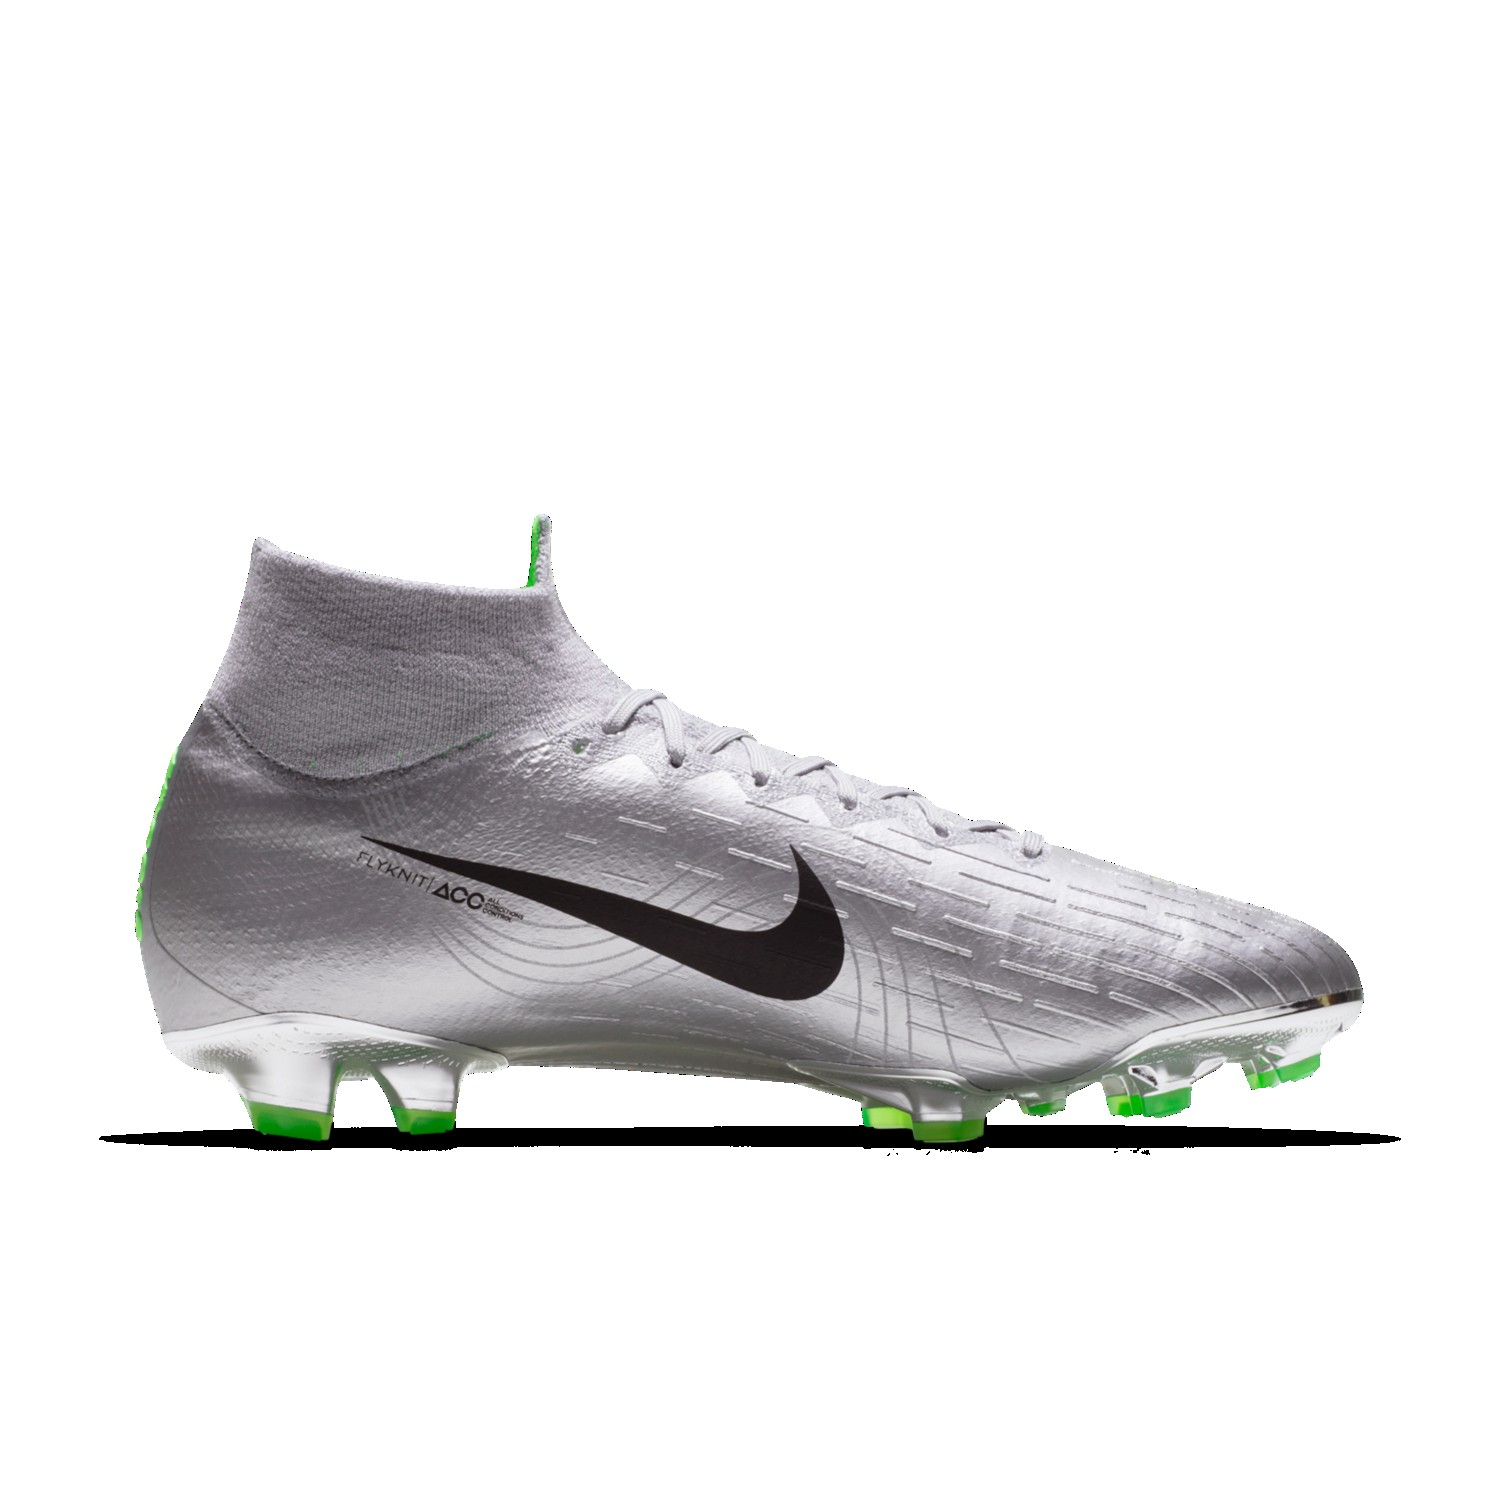 the best attitude 16772 2989e Nike Mercurial Superfly 360 Elite 2002 iD Football Boots ...